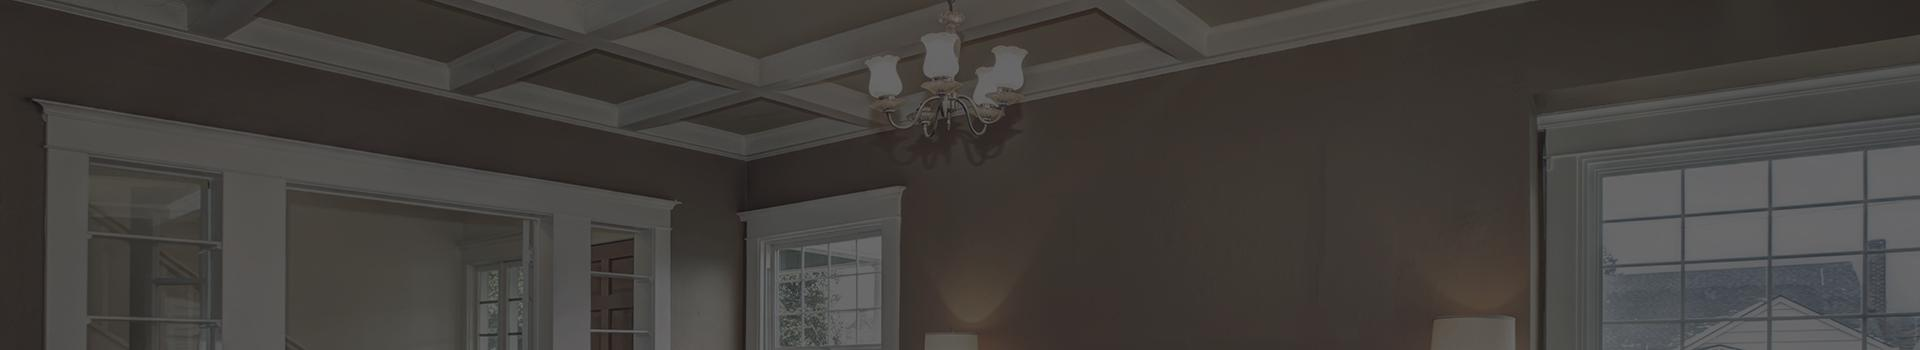 House ceiling trim Southern Ontario